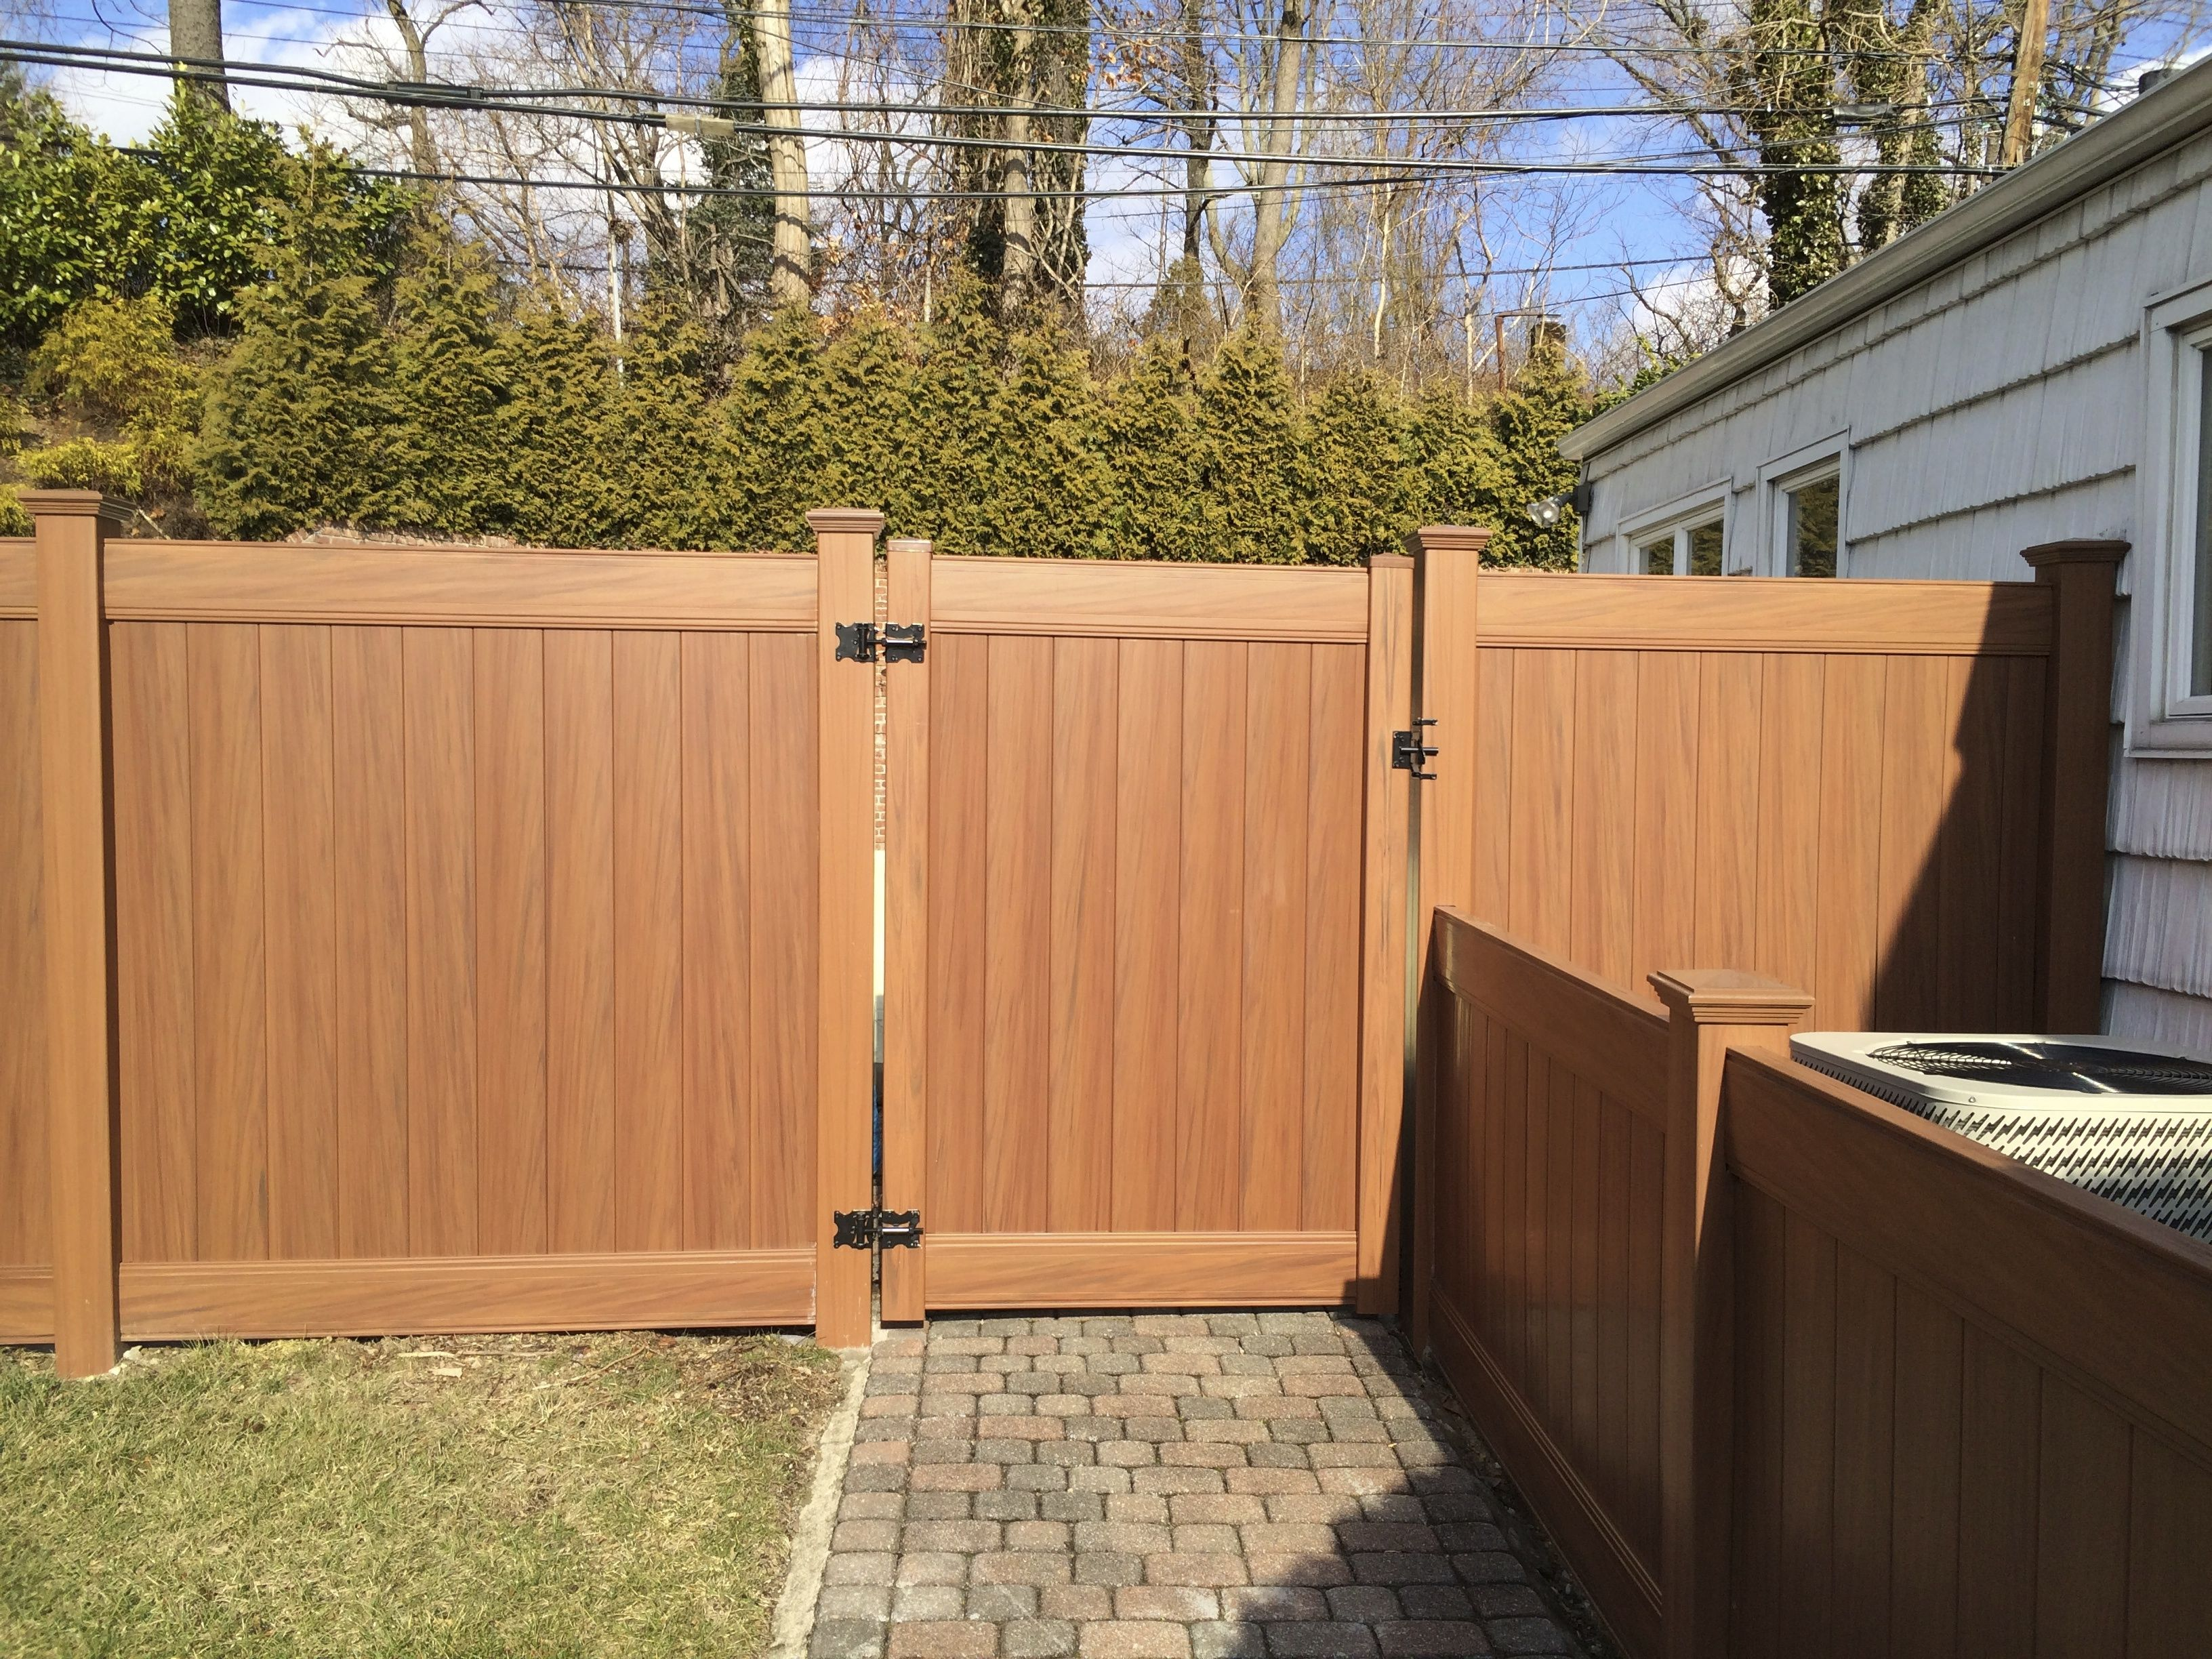 6 ft Infinity Solid woodgrain vinyl fence and gate